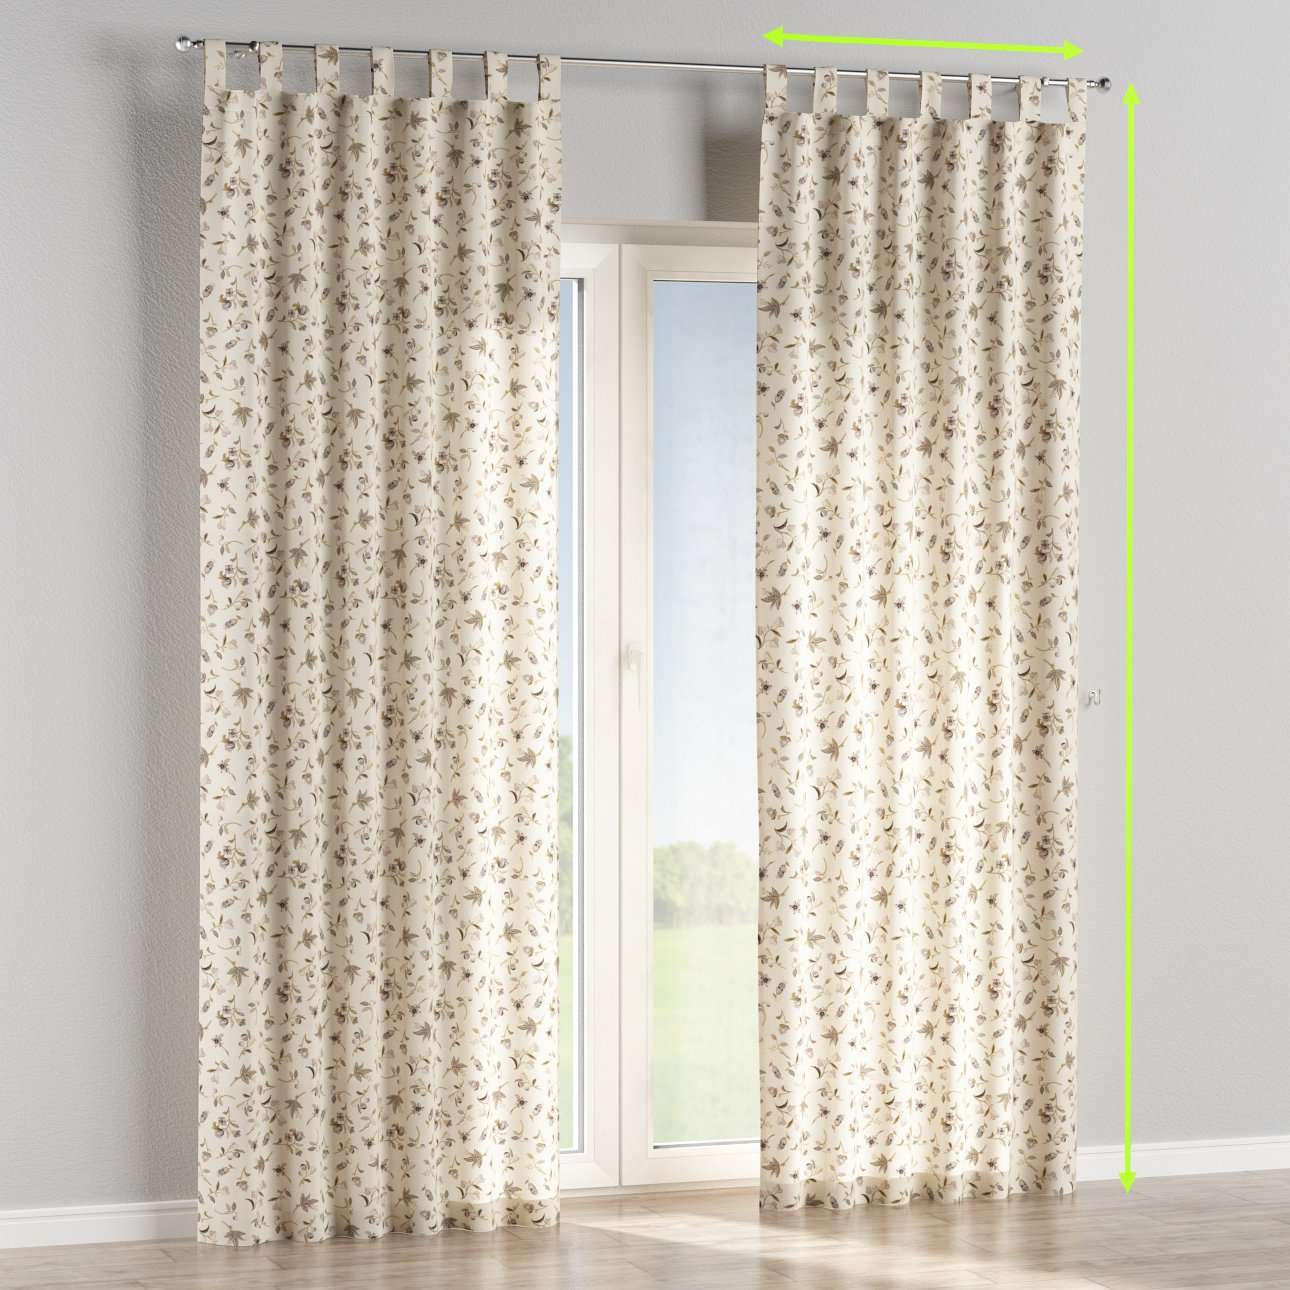 Tab top curtains in collection Londres, fabric: 122-04